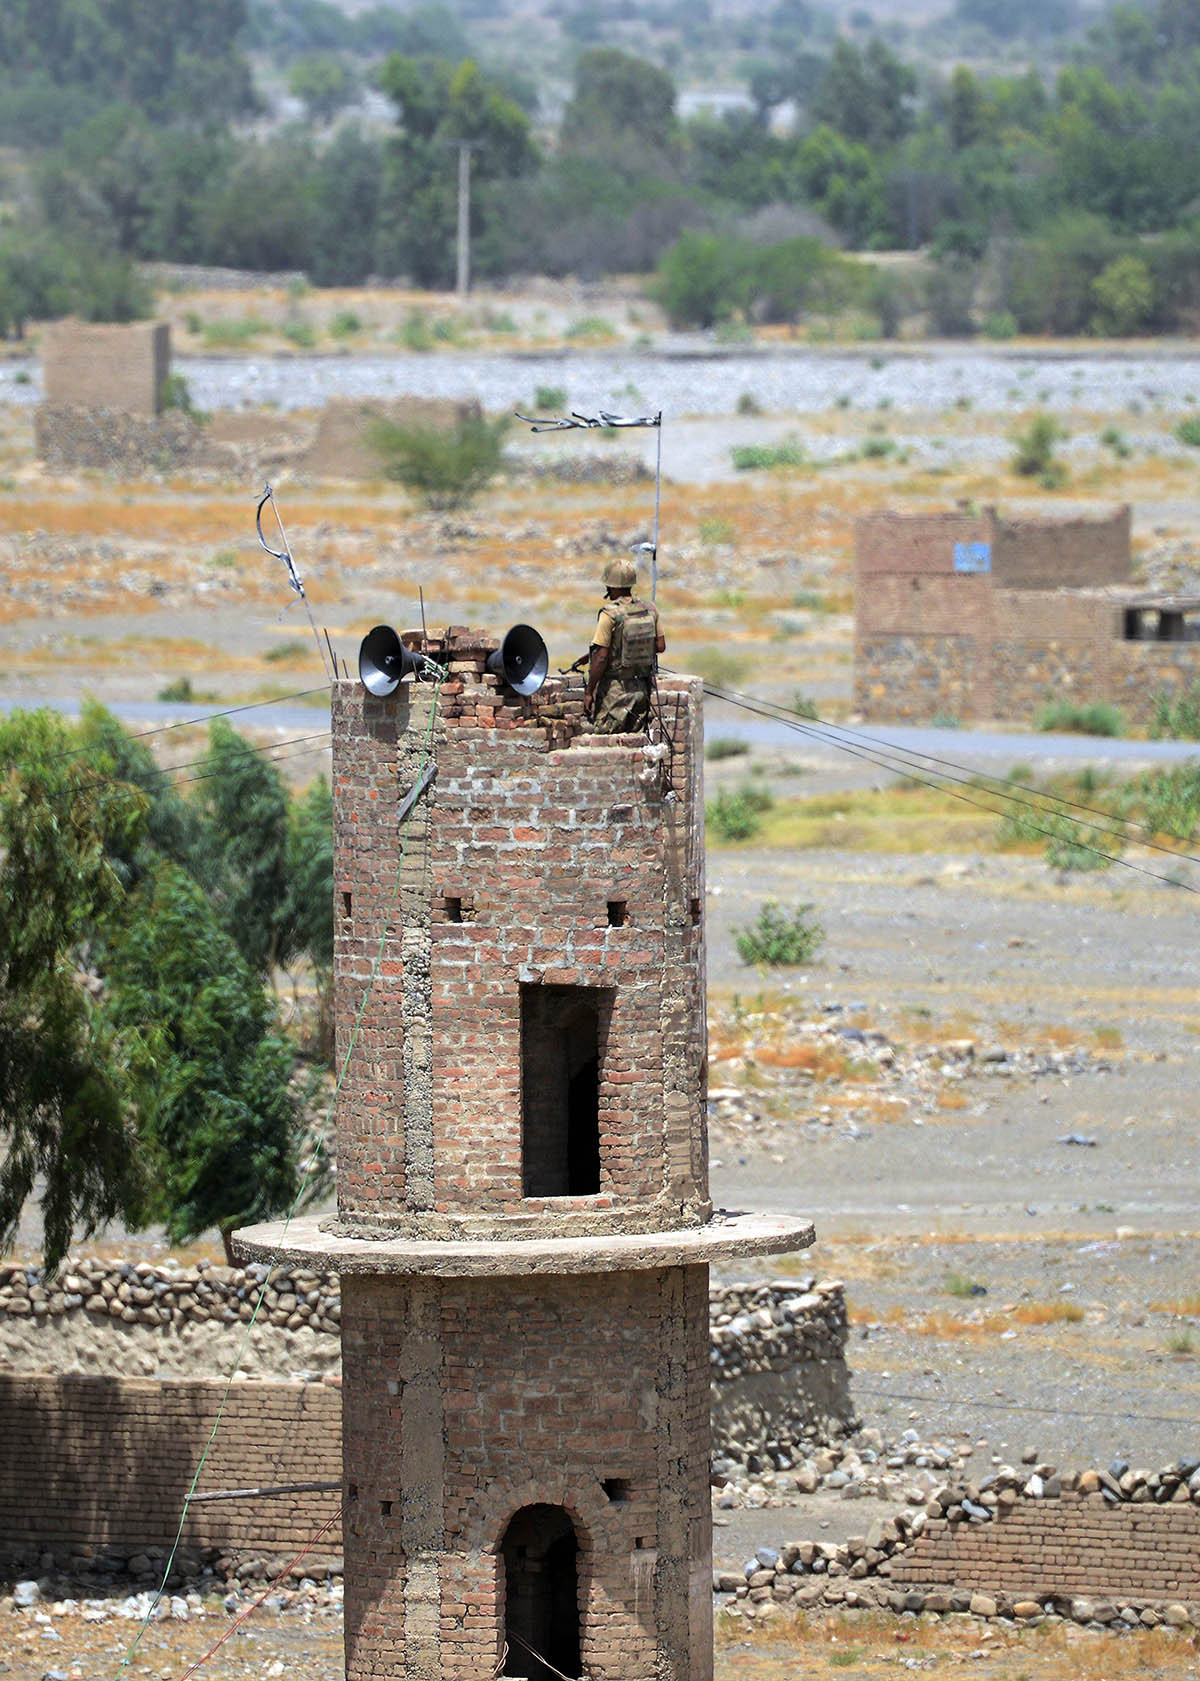 This photograph taken on July 9, 2014 shows a soldier keeping watch on top of damaged mosque minaret during a military operation against Taliban militants, in the main town of Miramshah in North Waziristan.  — Photo by AFP